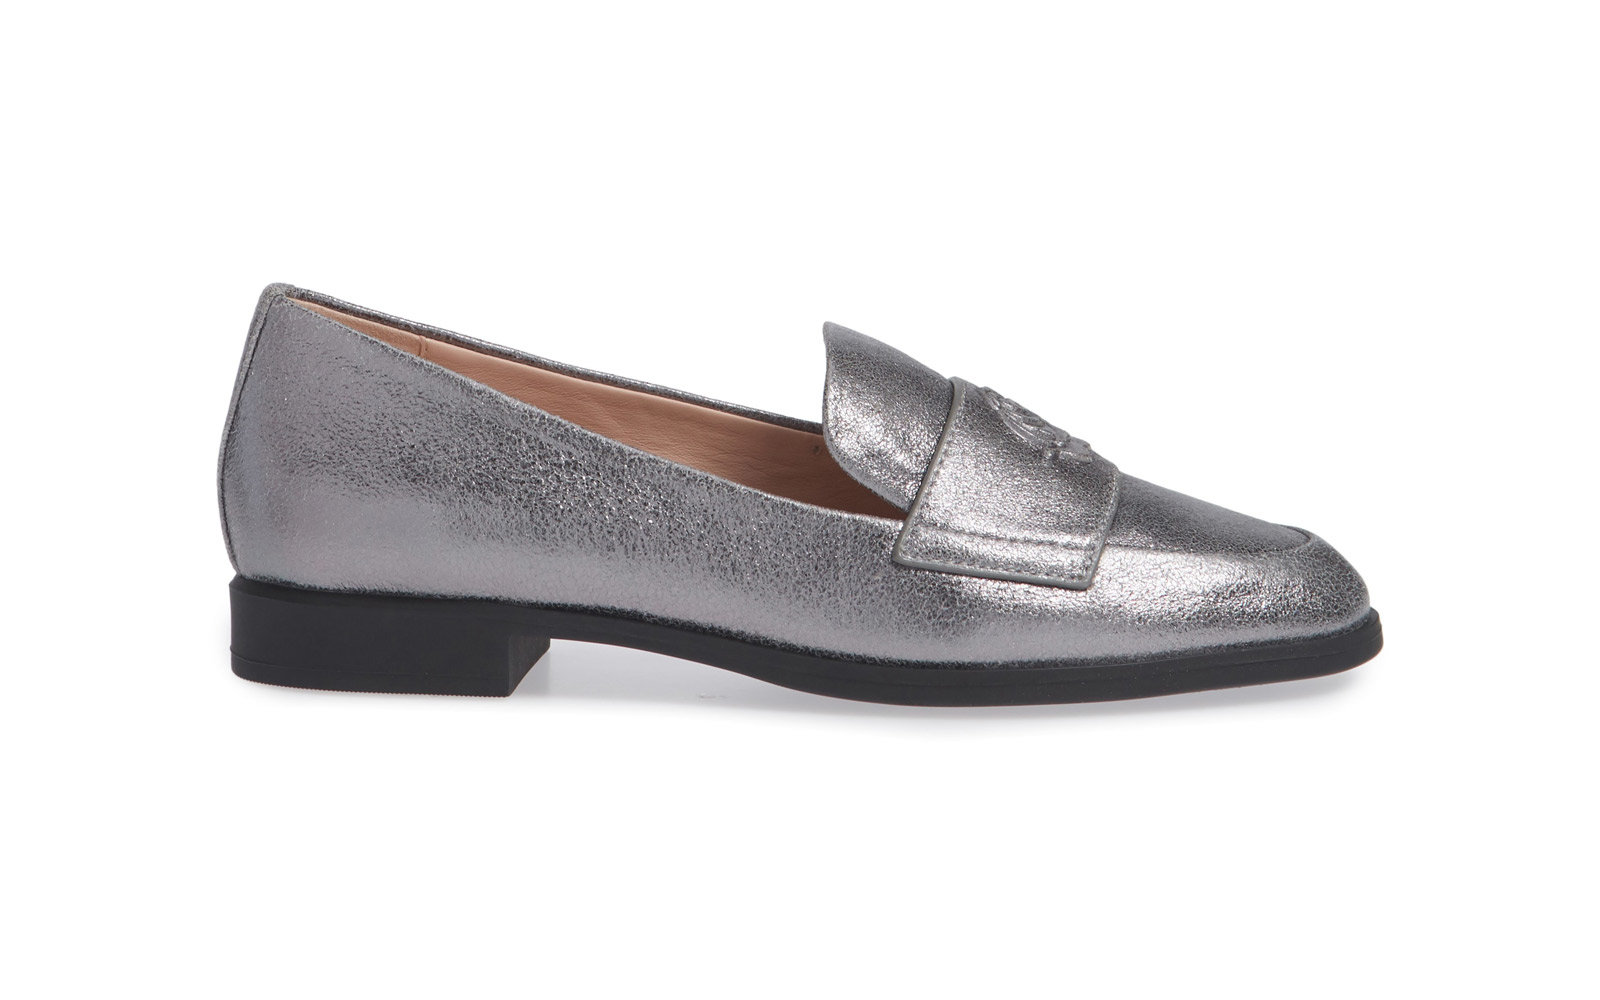 taryn rose arch support shoes for women